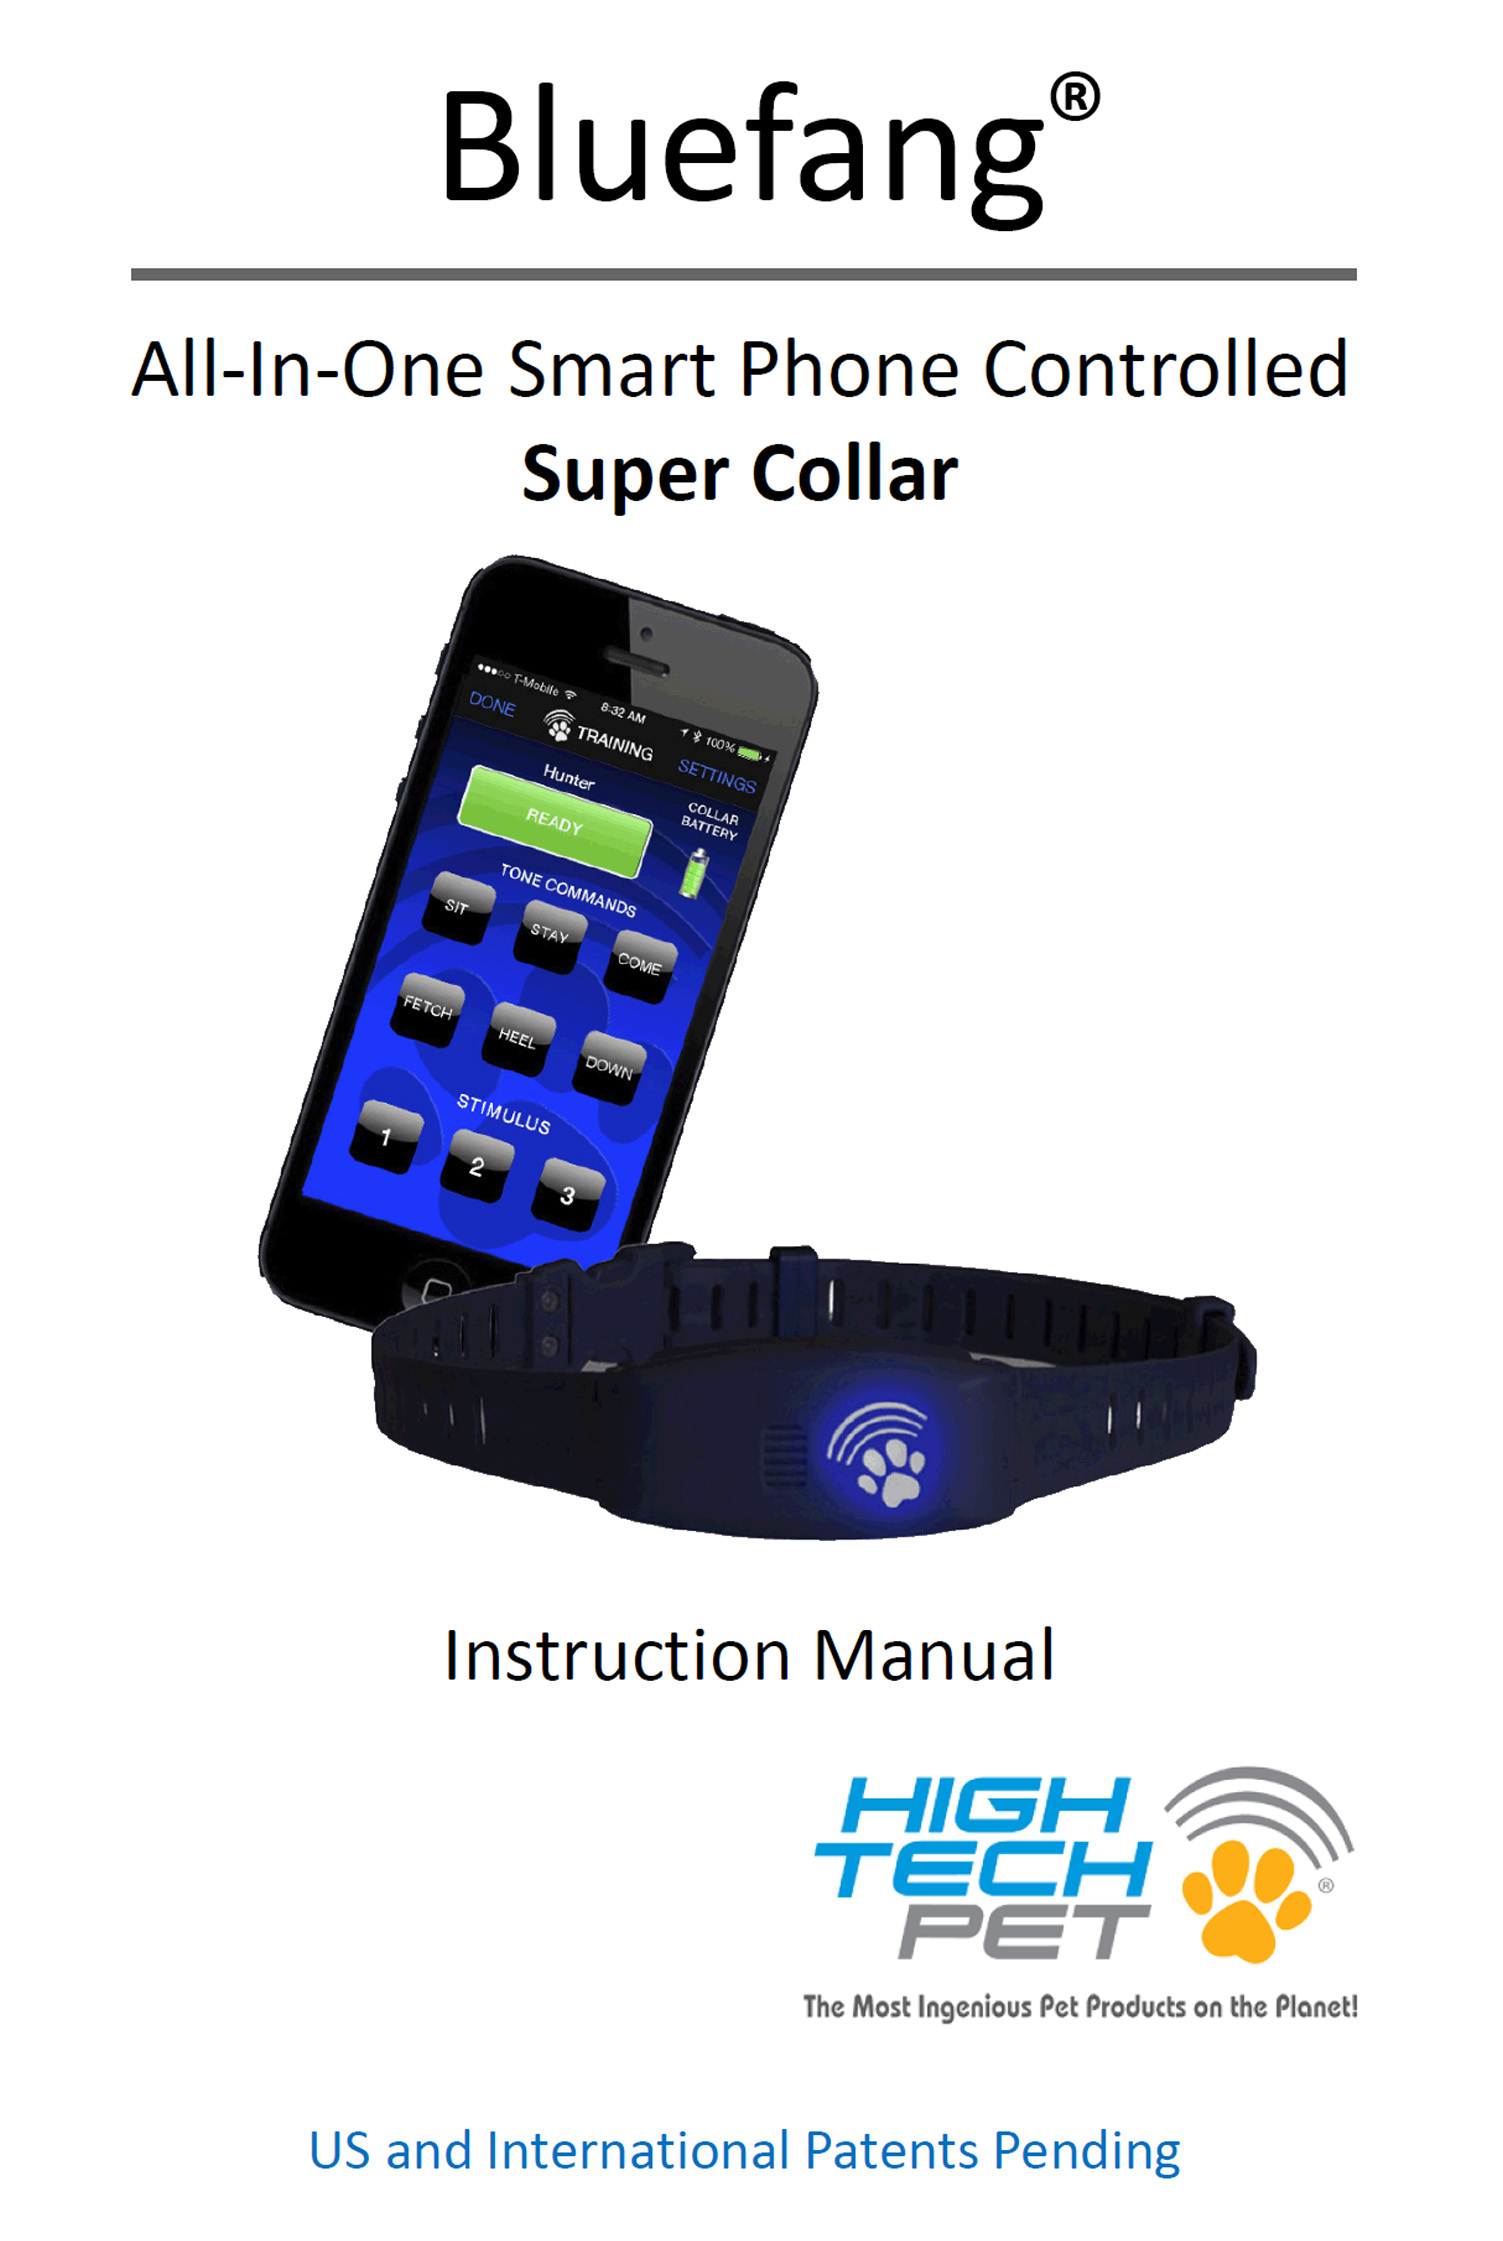 Need help? Check out our Bluefang collar manual